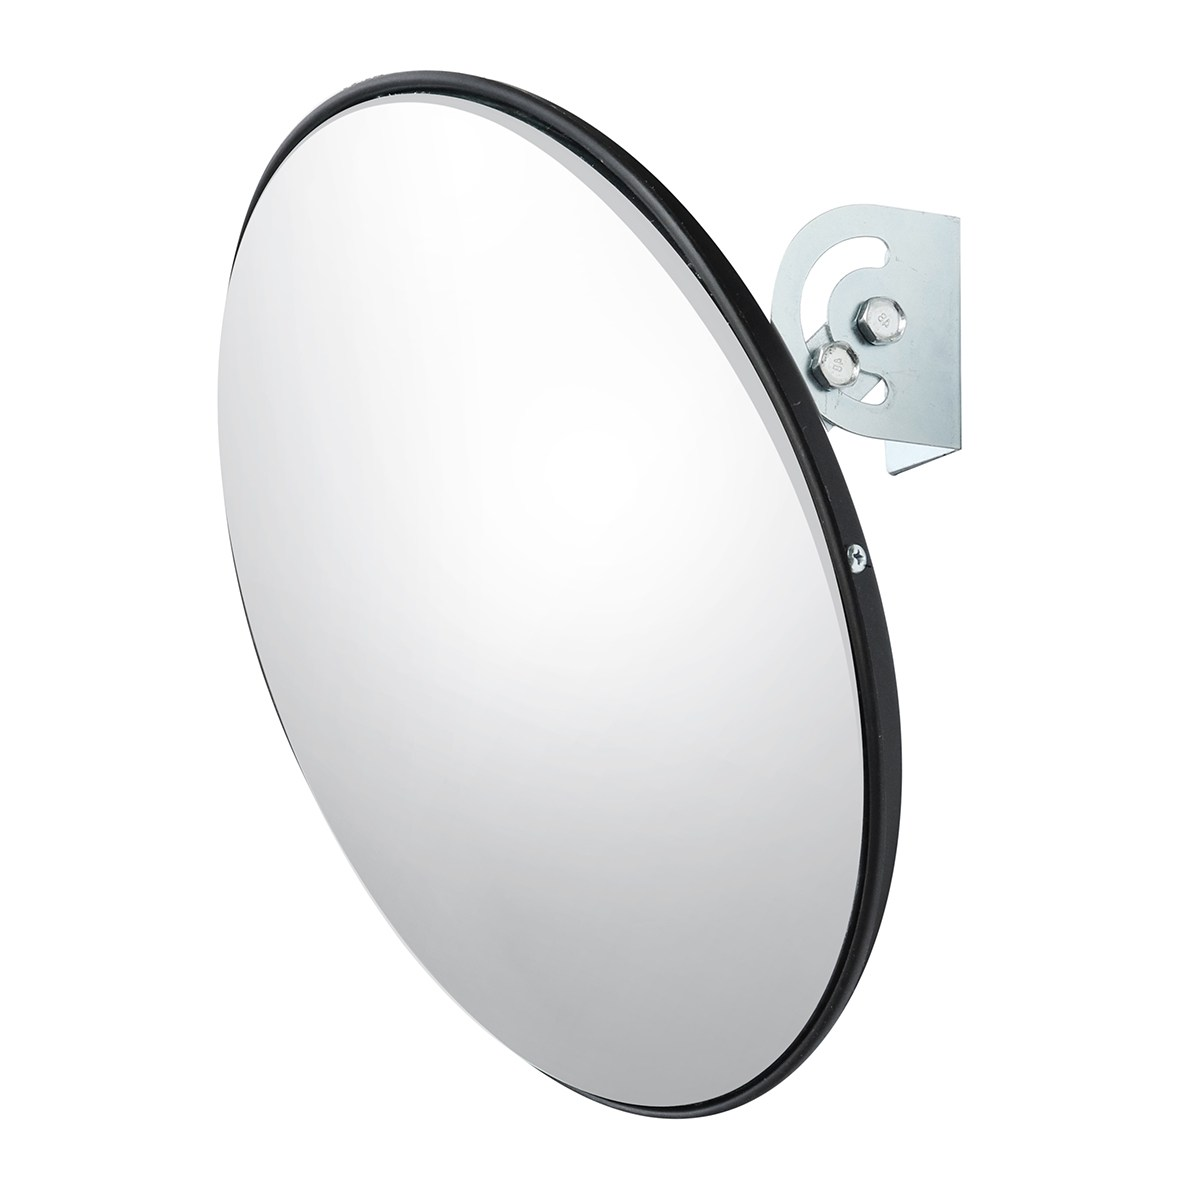 NEW Safurance 45 cm Wide Angle Curved Convex Security Road Mirror For Indoor Burglar Traffic Signal Roadway Safety